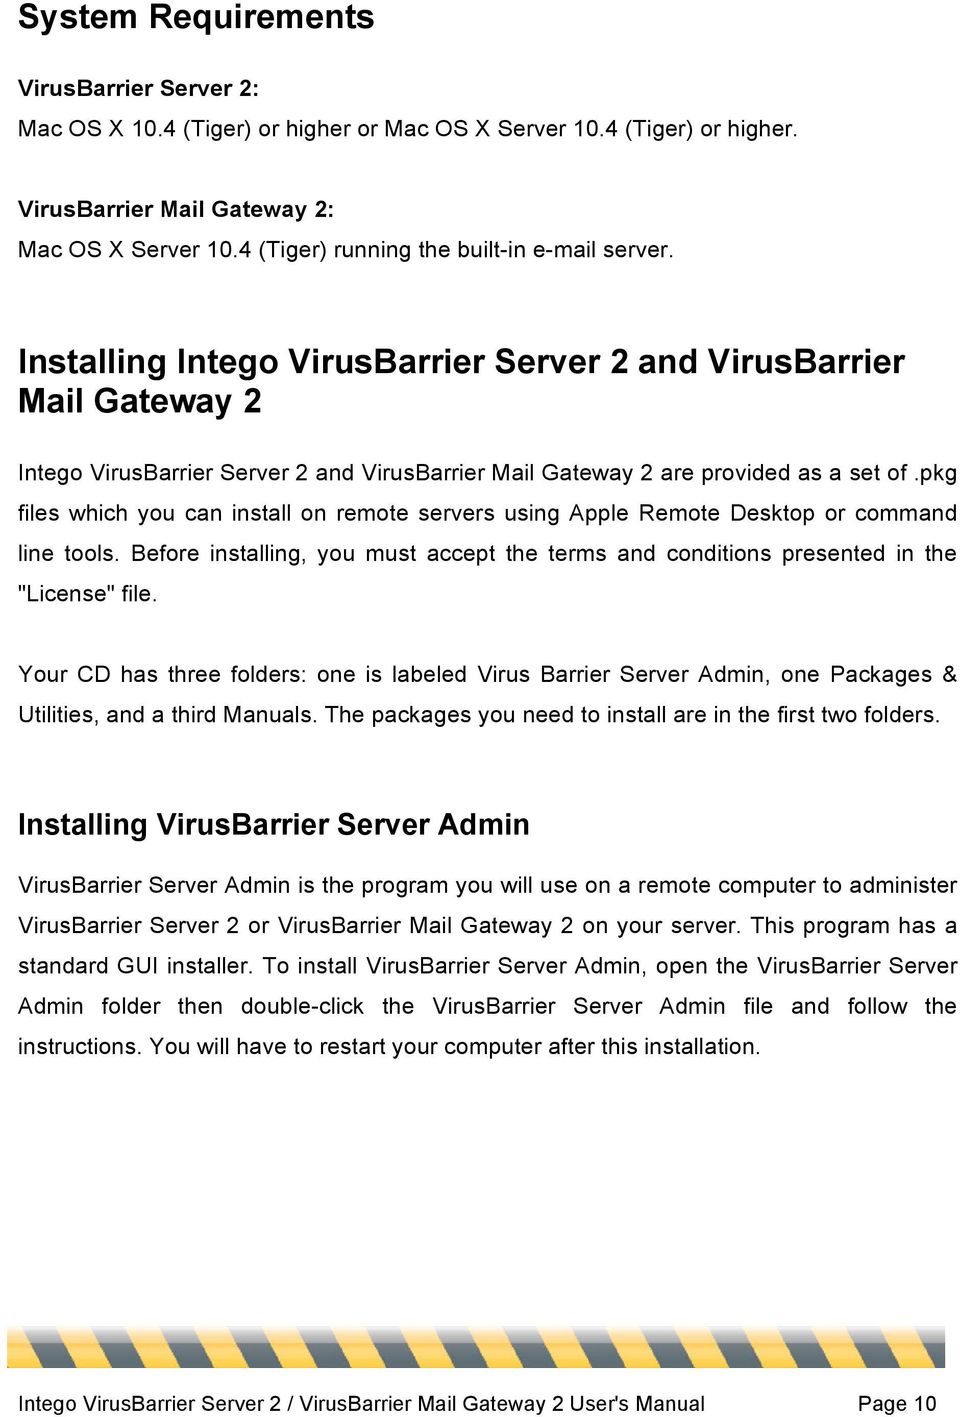 Installing Intego VirusBarrier Server 2 and VirusBarrier Mail Gateway 2 Intego VirusBarrier Server 2 and VirusBarrier Mail Gateway 2 are provided as a set of.